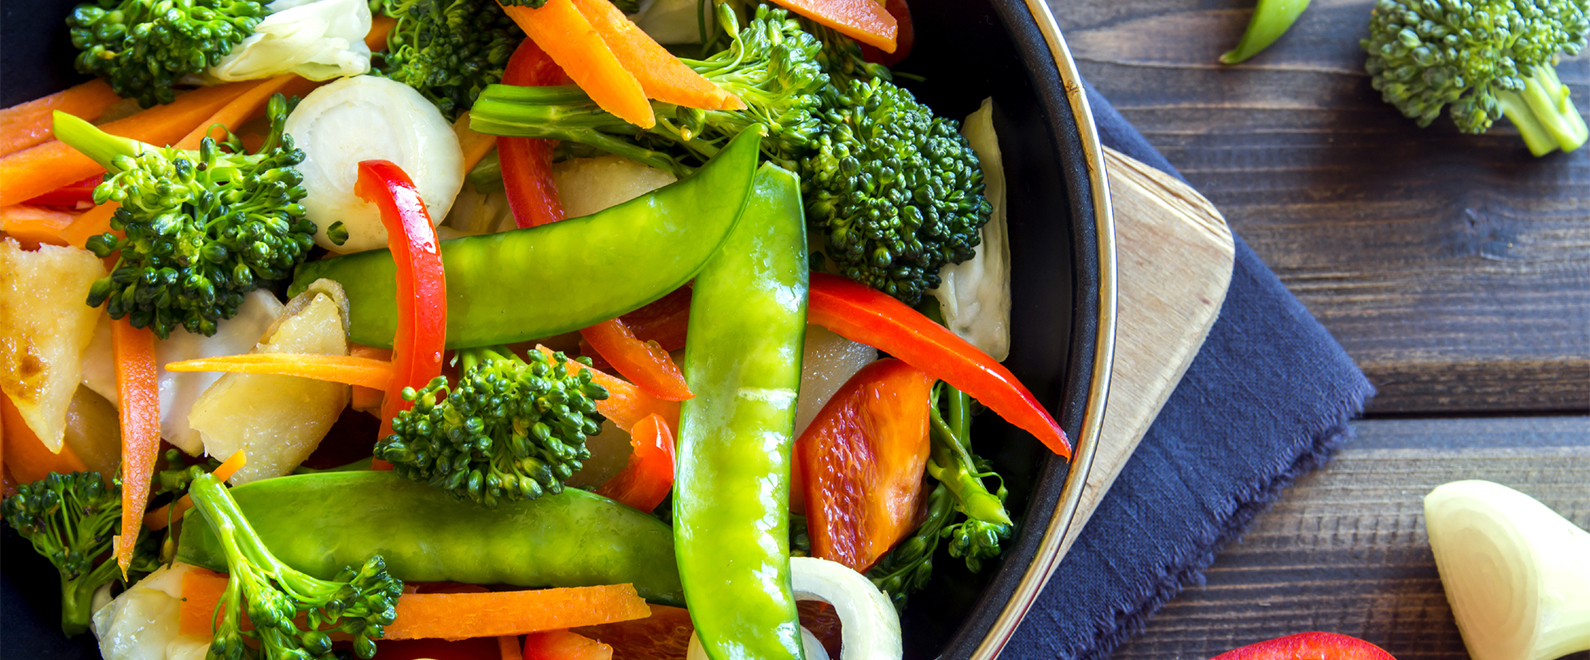 Vegetables made more appealing when given 'seductive names'